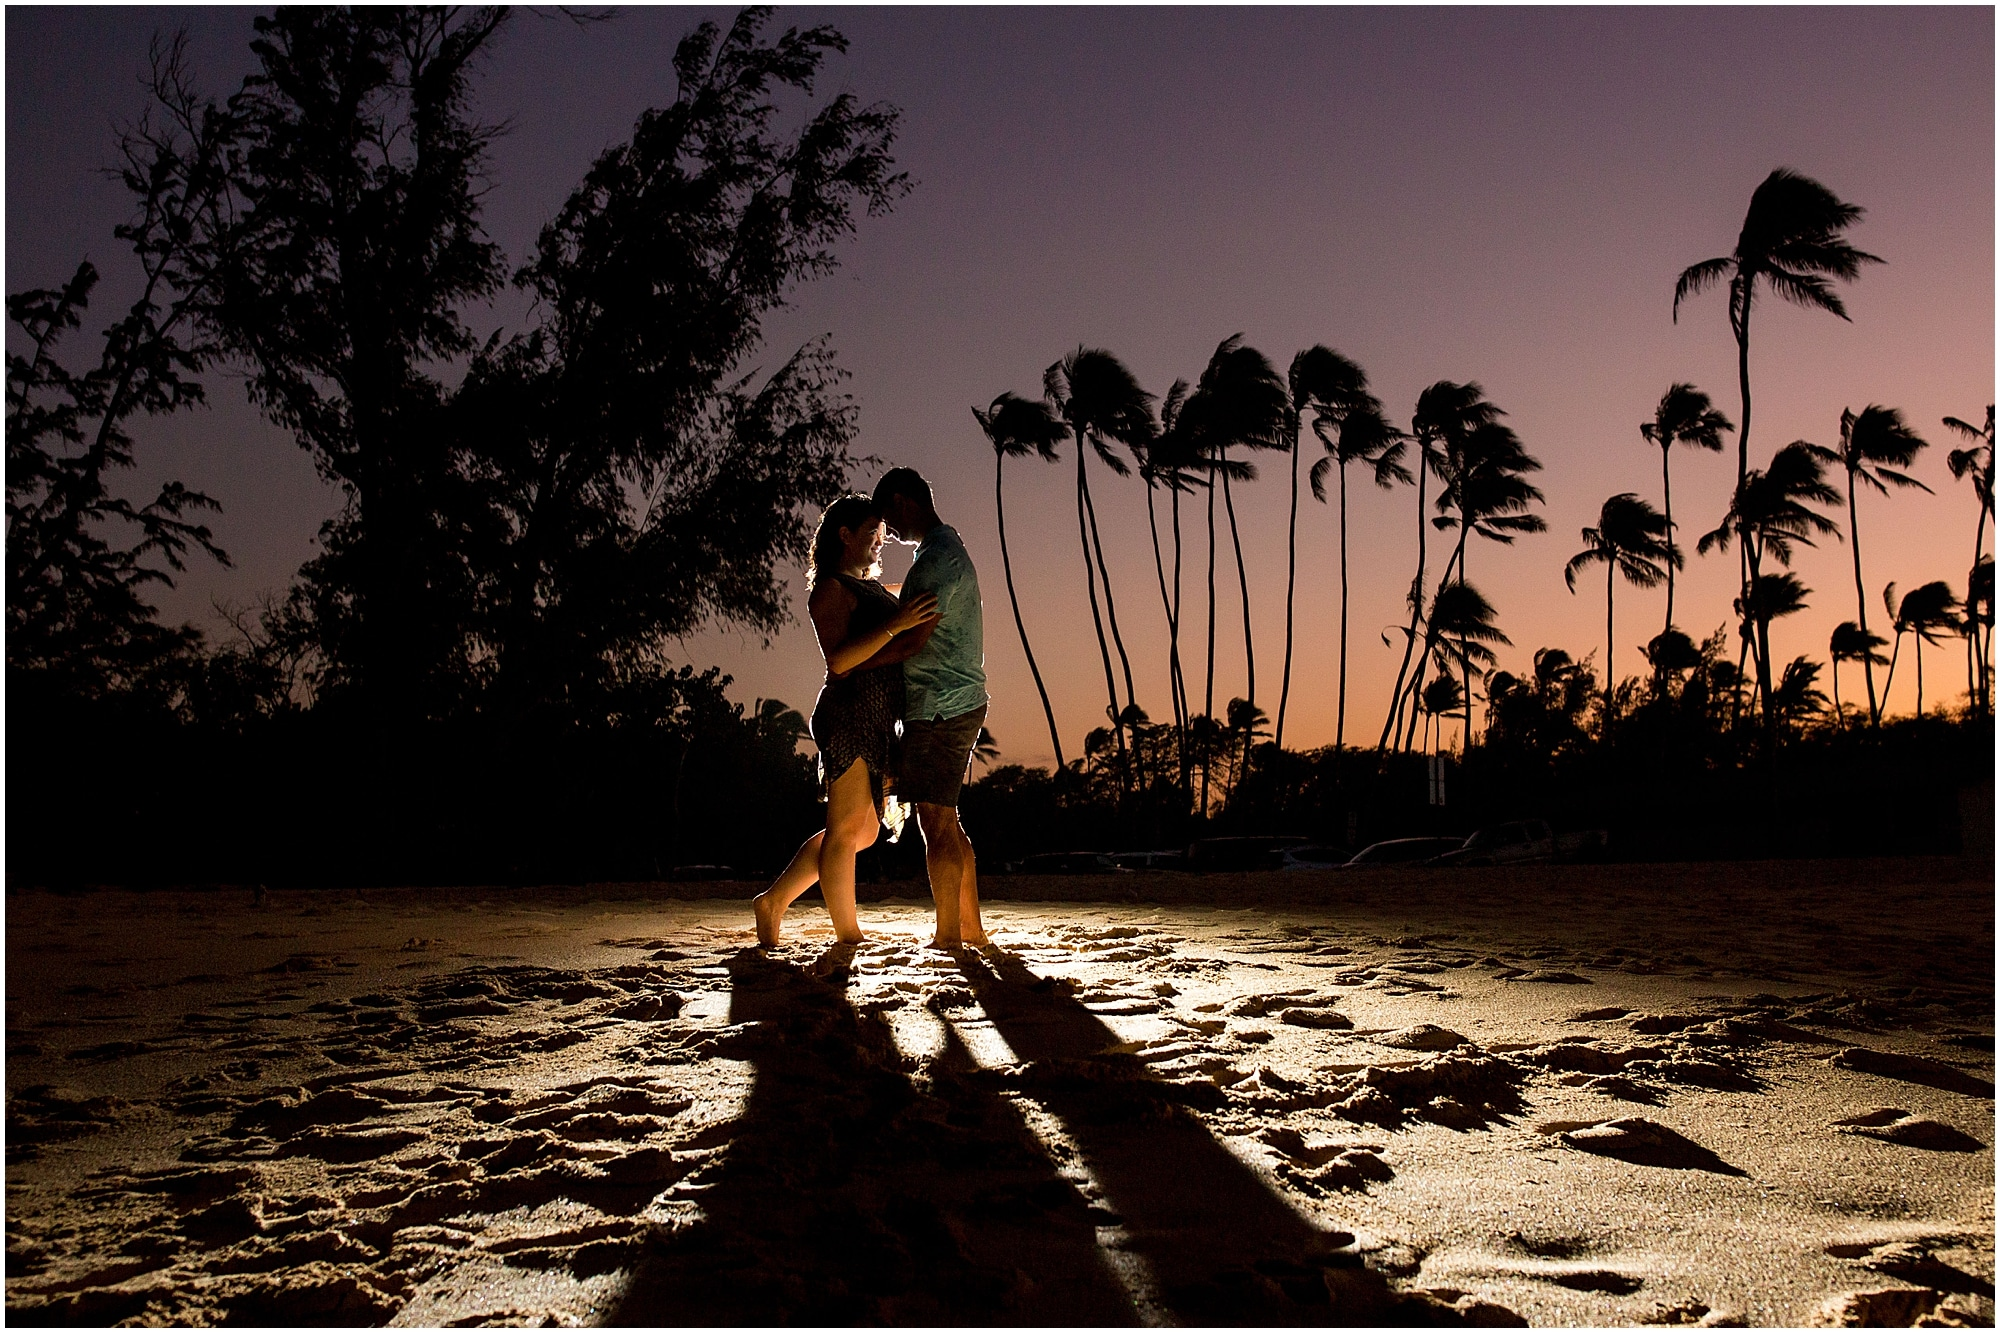 kiss on Maui beach after dusk with palm trees in the background